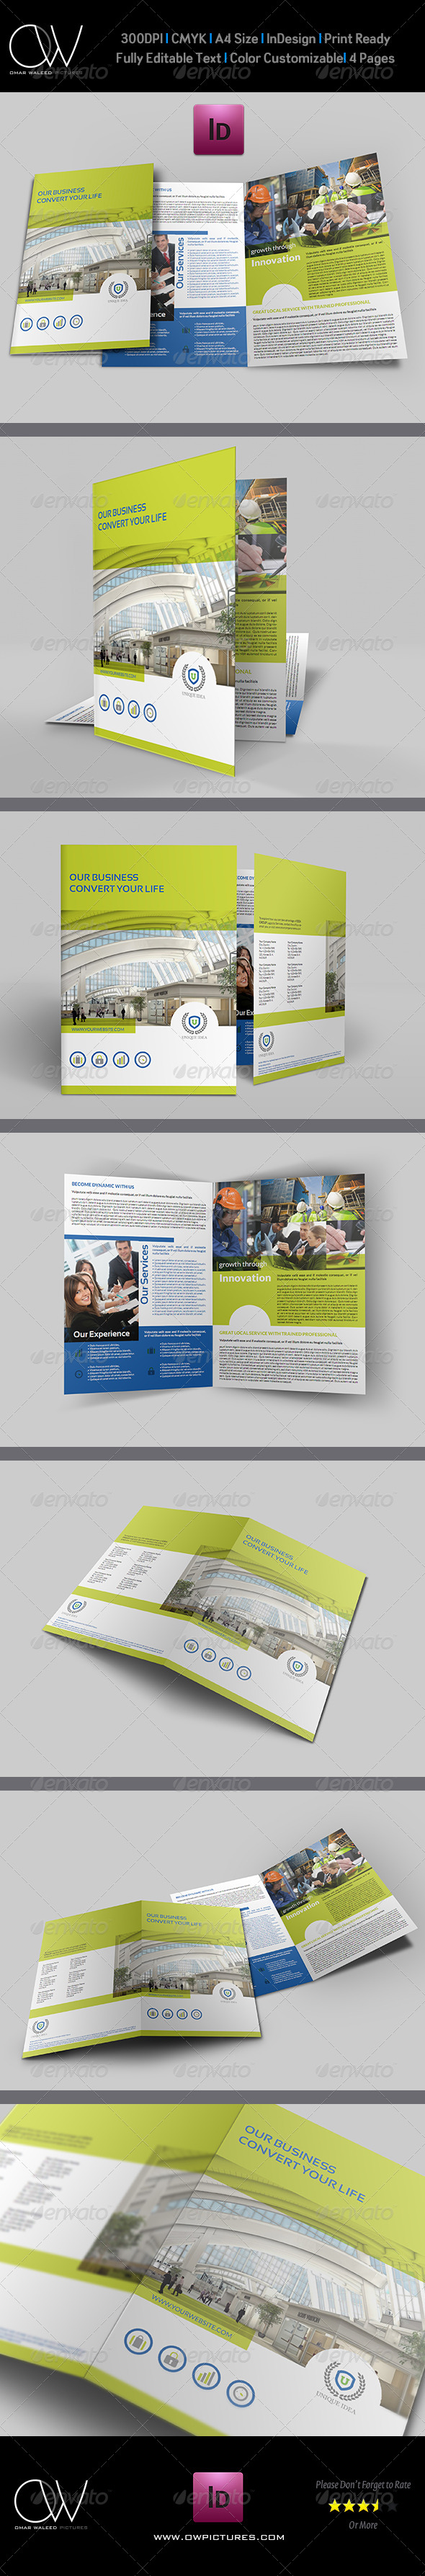 GraphicRiver Company Brochure Bi-Fold Template 6123279